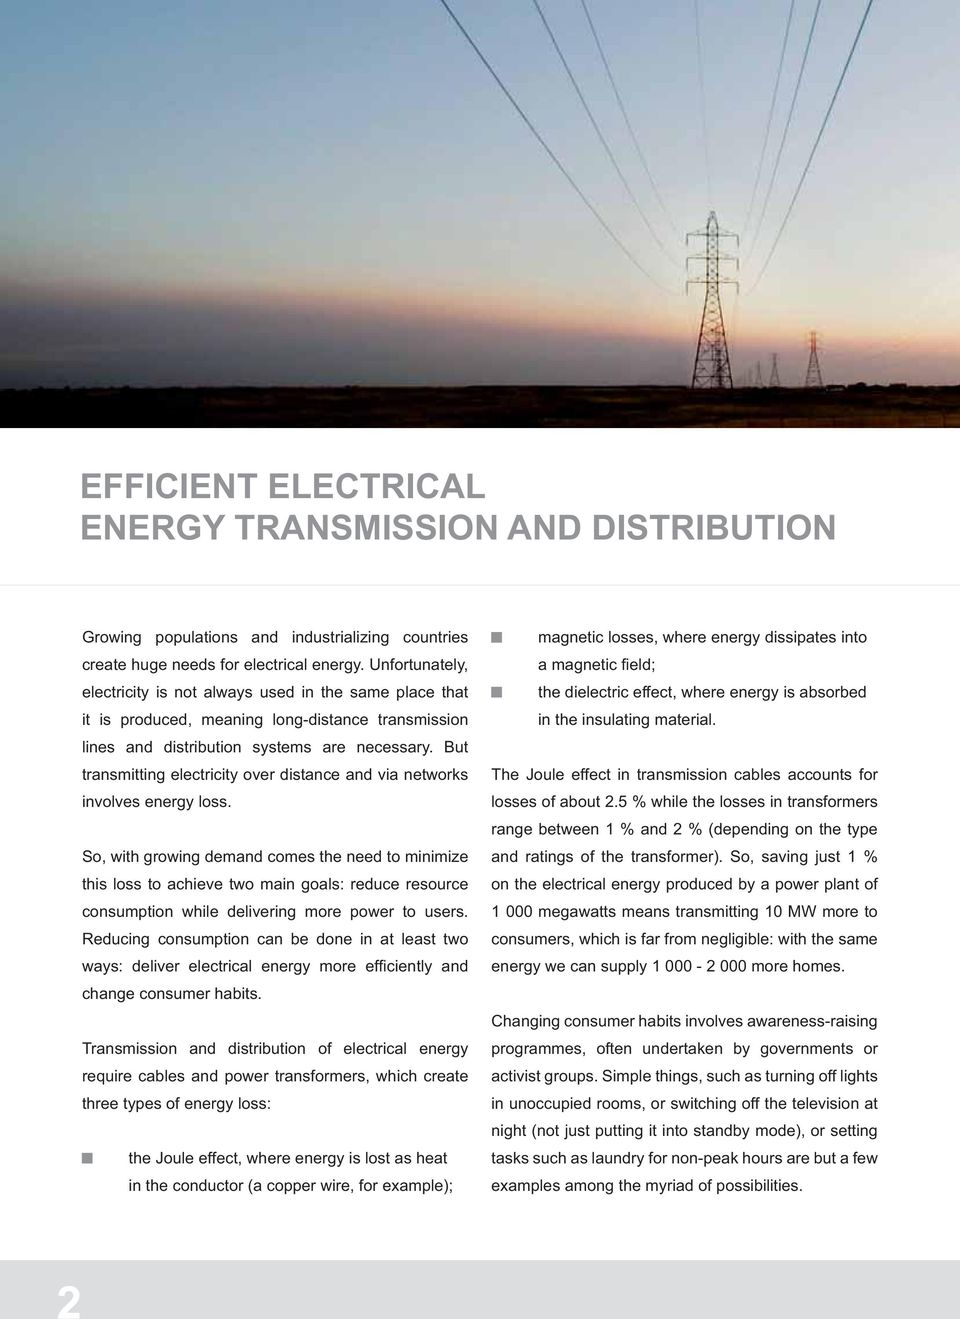 But transmitting electricity over distance and via networks involves energy loss.